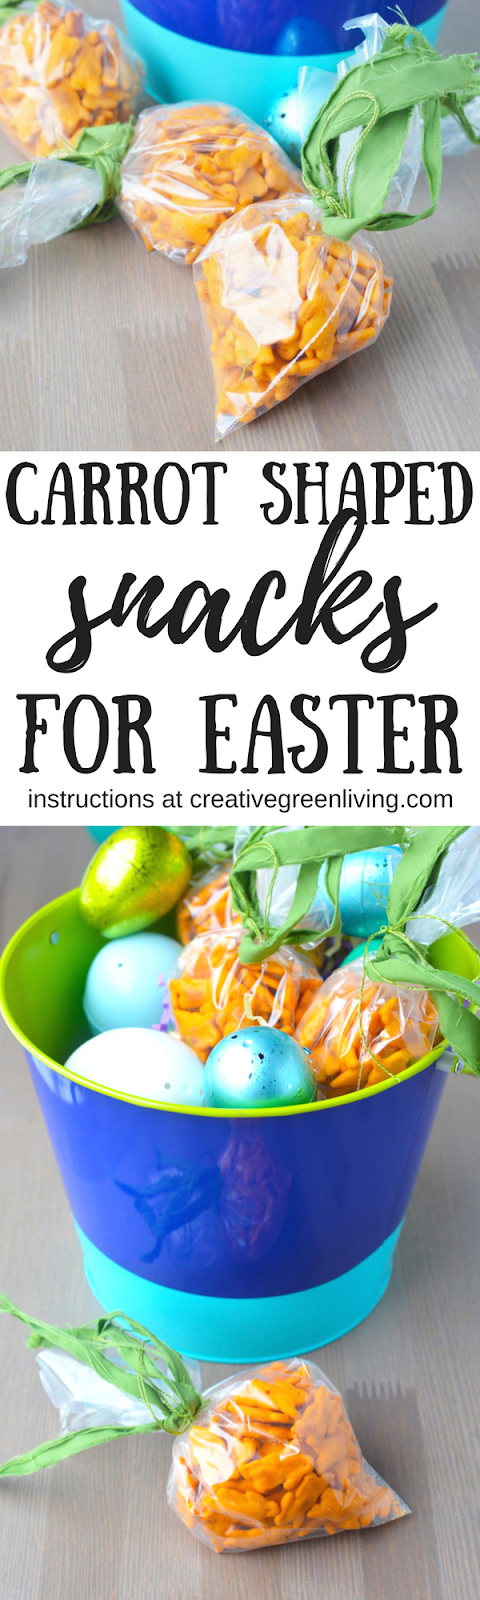 Healthy easter basket idea cheddar bunny carrot shaped treat bags i hope you loved this healthy easter snack idea negle Gallery